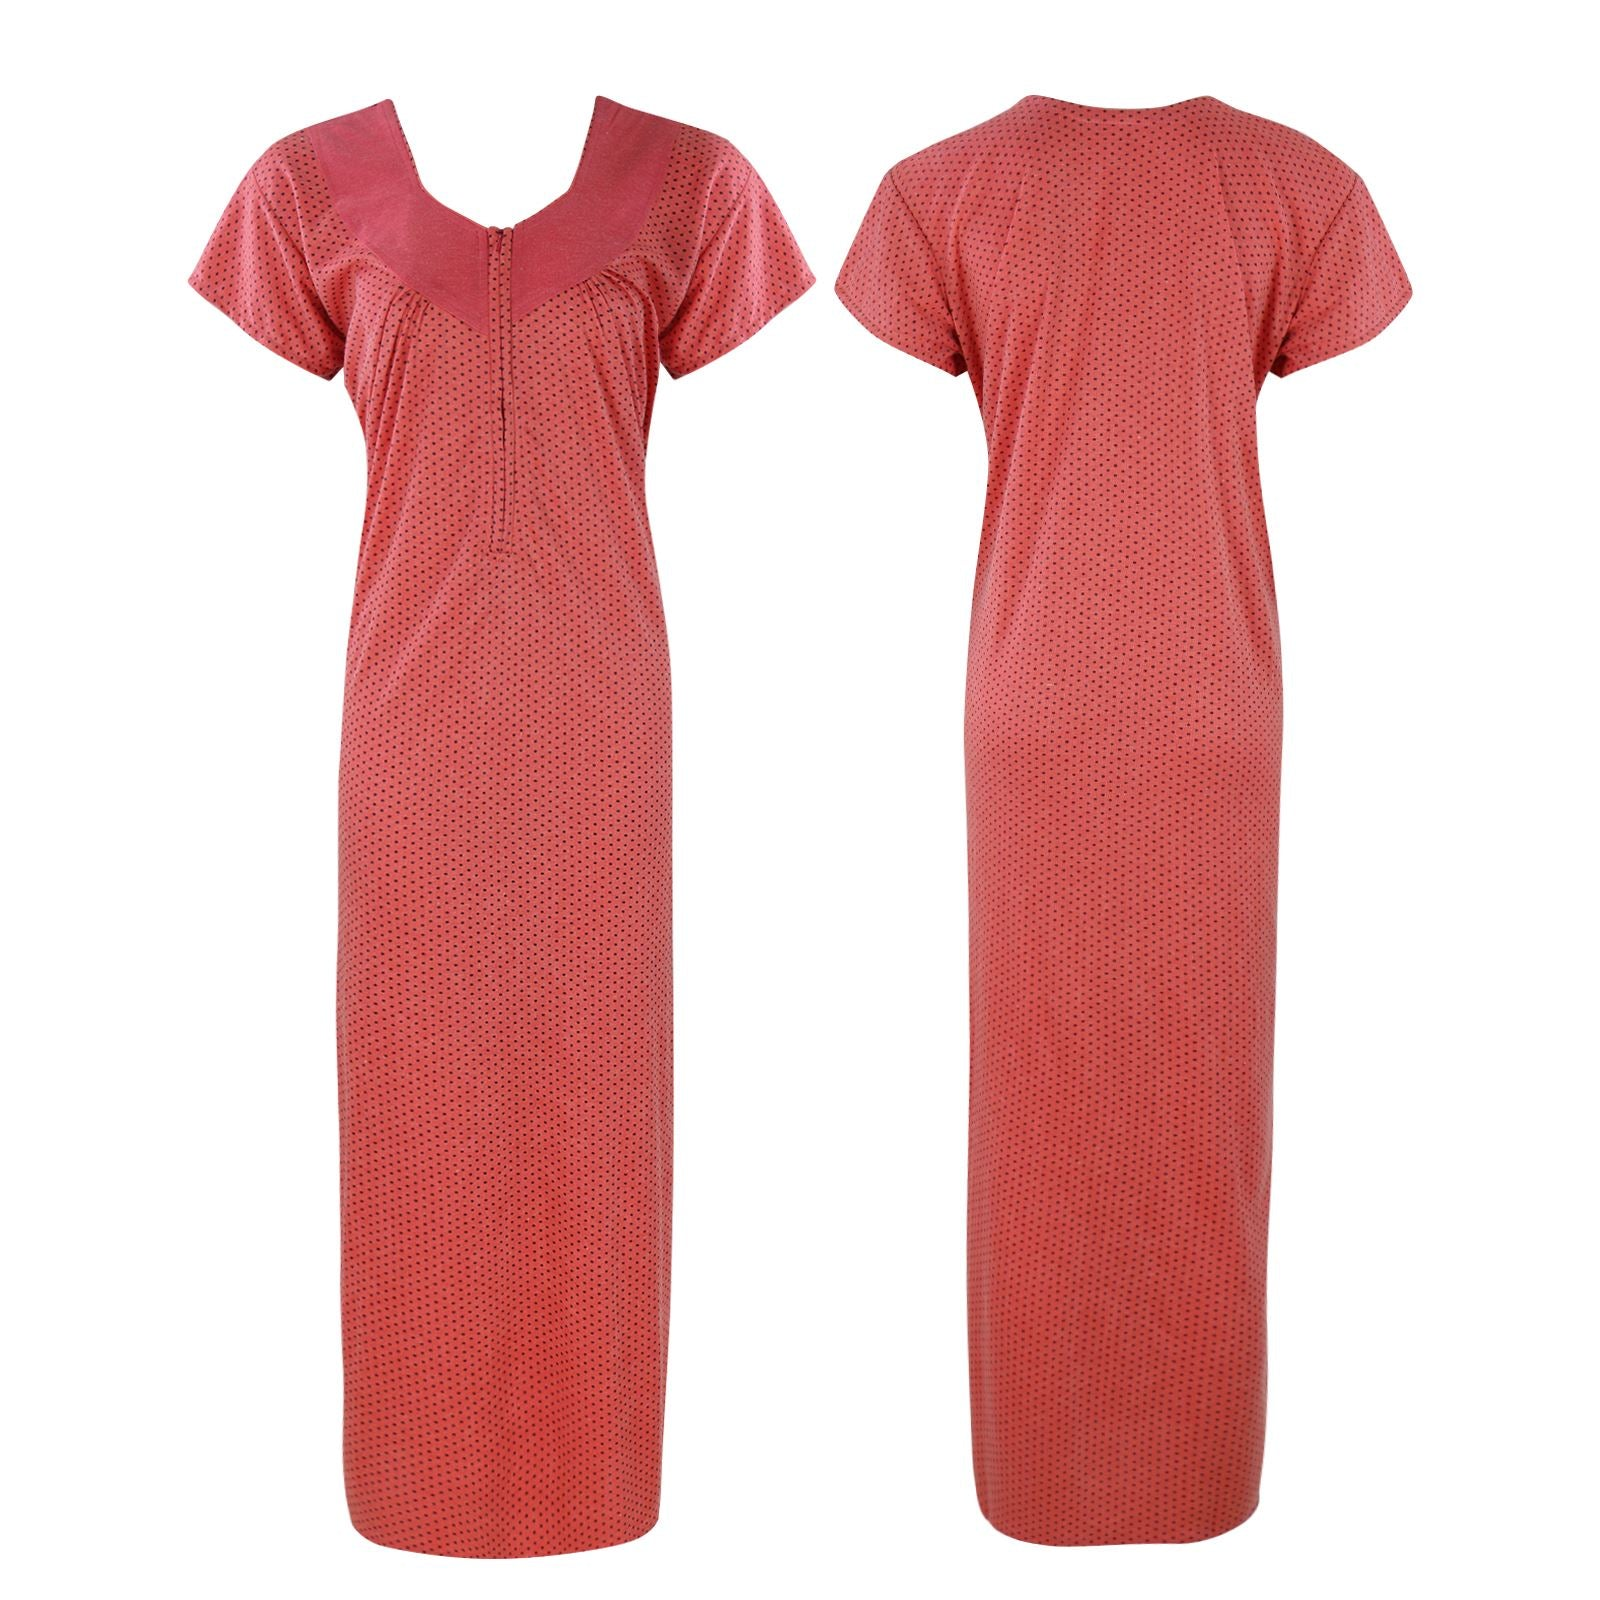 Cotton Rich Solid Colour Zip Nightdress [colour]- Hautie UK, #Nightfashion | #Underfashion